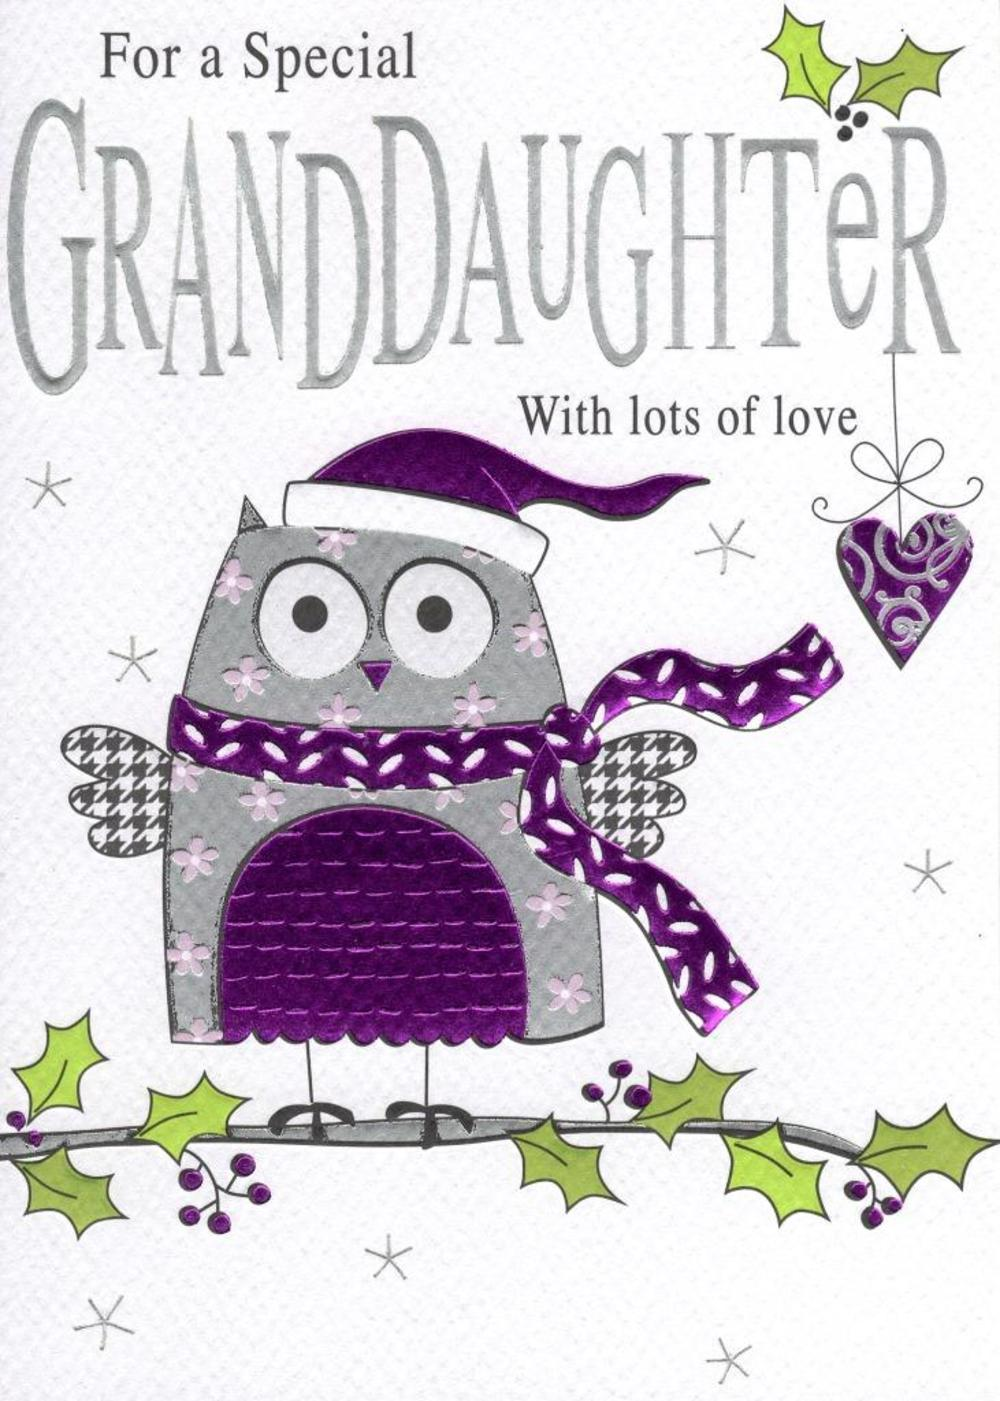 Special Granddaughter Christmas Card